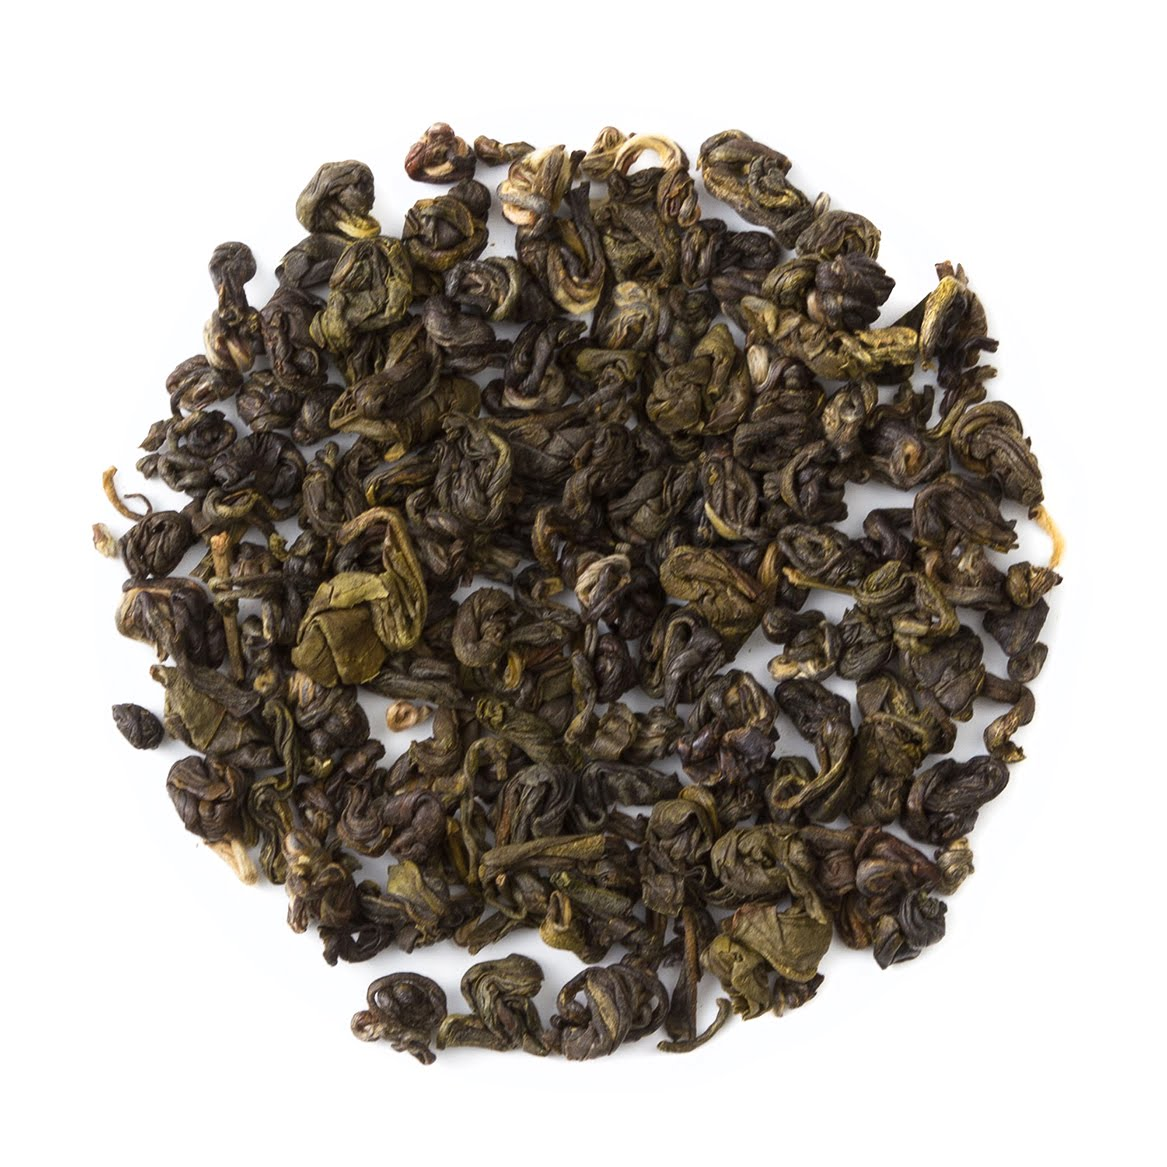 Floral Teas - Oolong Teas - Lavender Teas - Jasmine Teas - Chamomile - Heavenly Tea Leaves